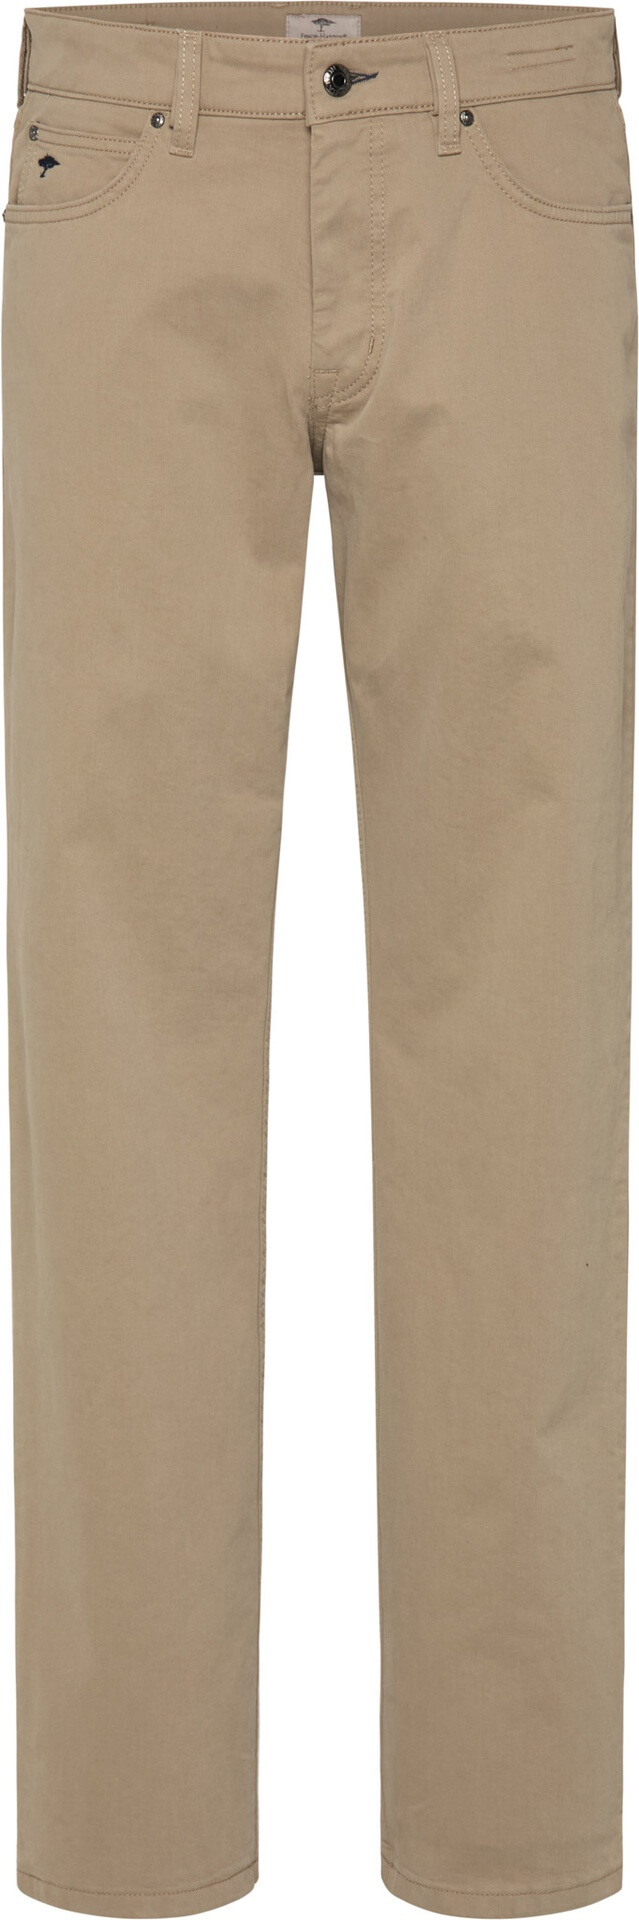 Fynch Hatton Beige Trousers